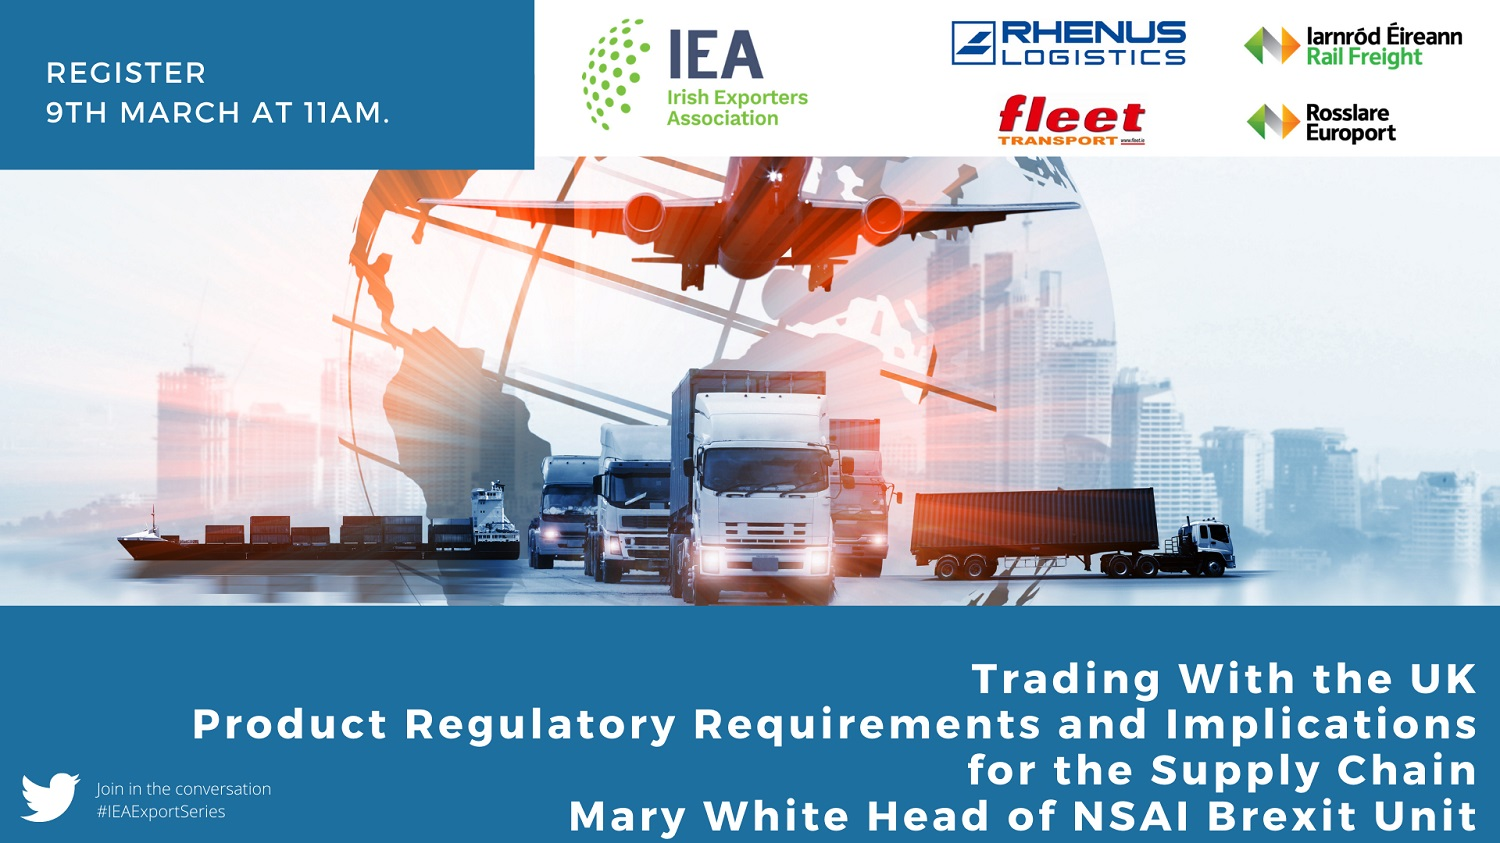 IEA Webinar: Trading With the UK, Product Regulatory Requirements and Implications for the Supply Chain